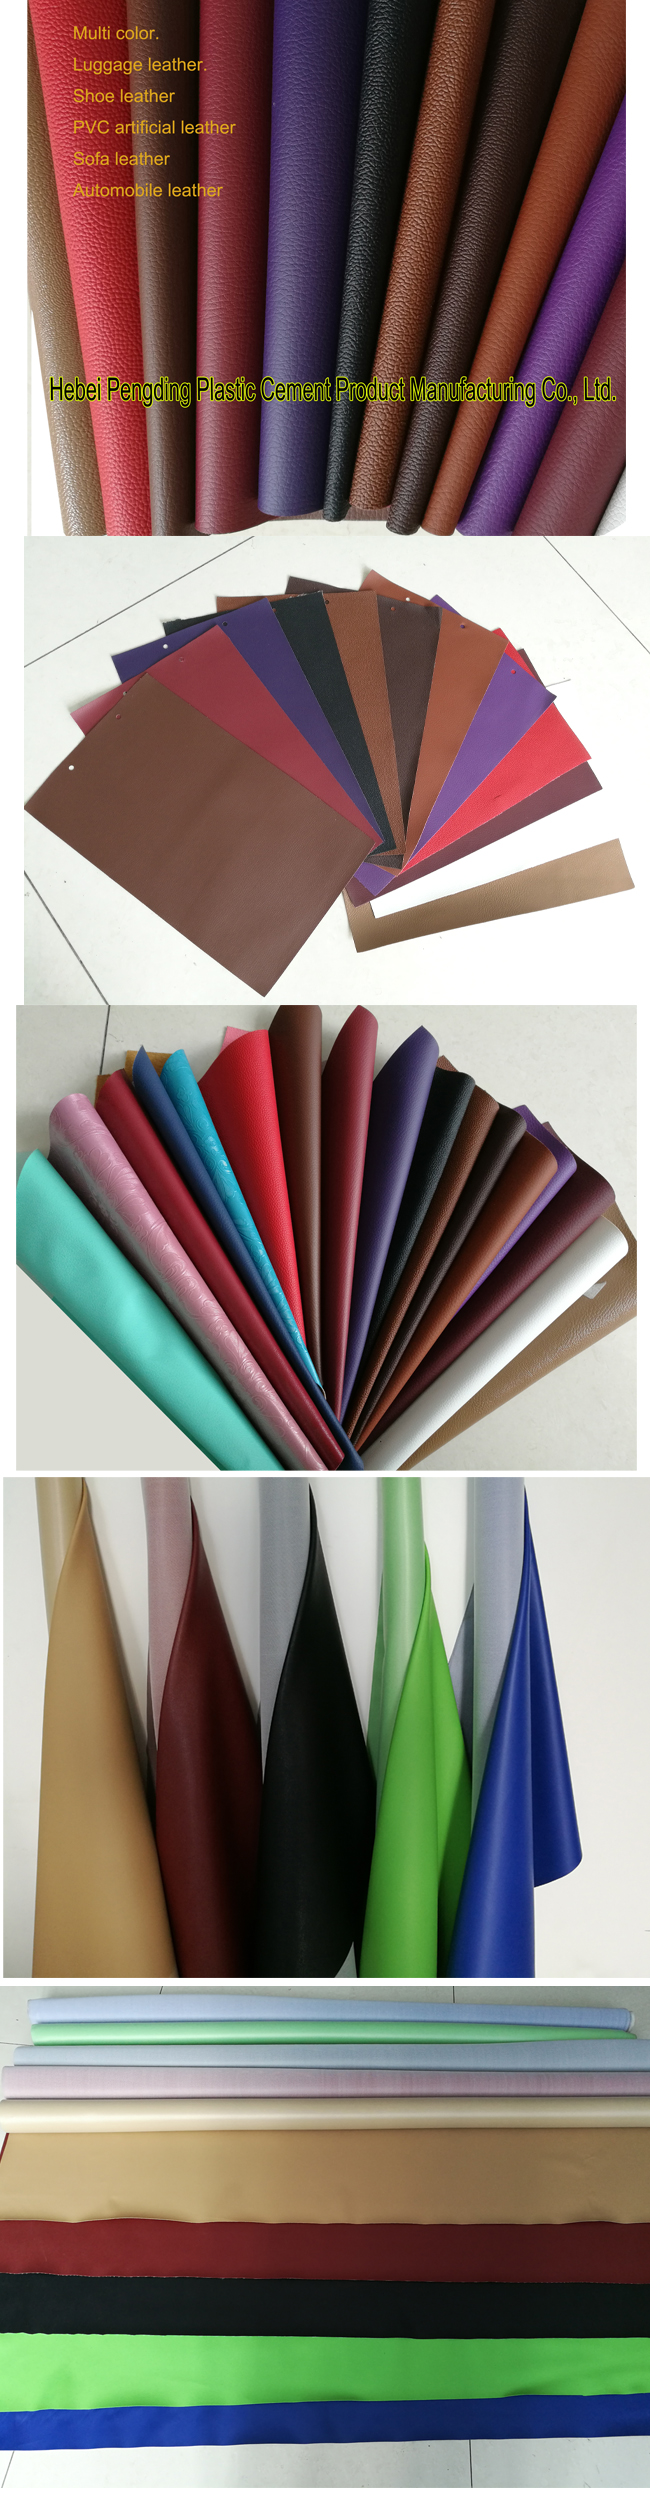 Elastic and waterproff PVC leather is durable